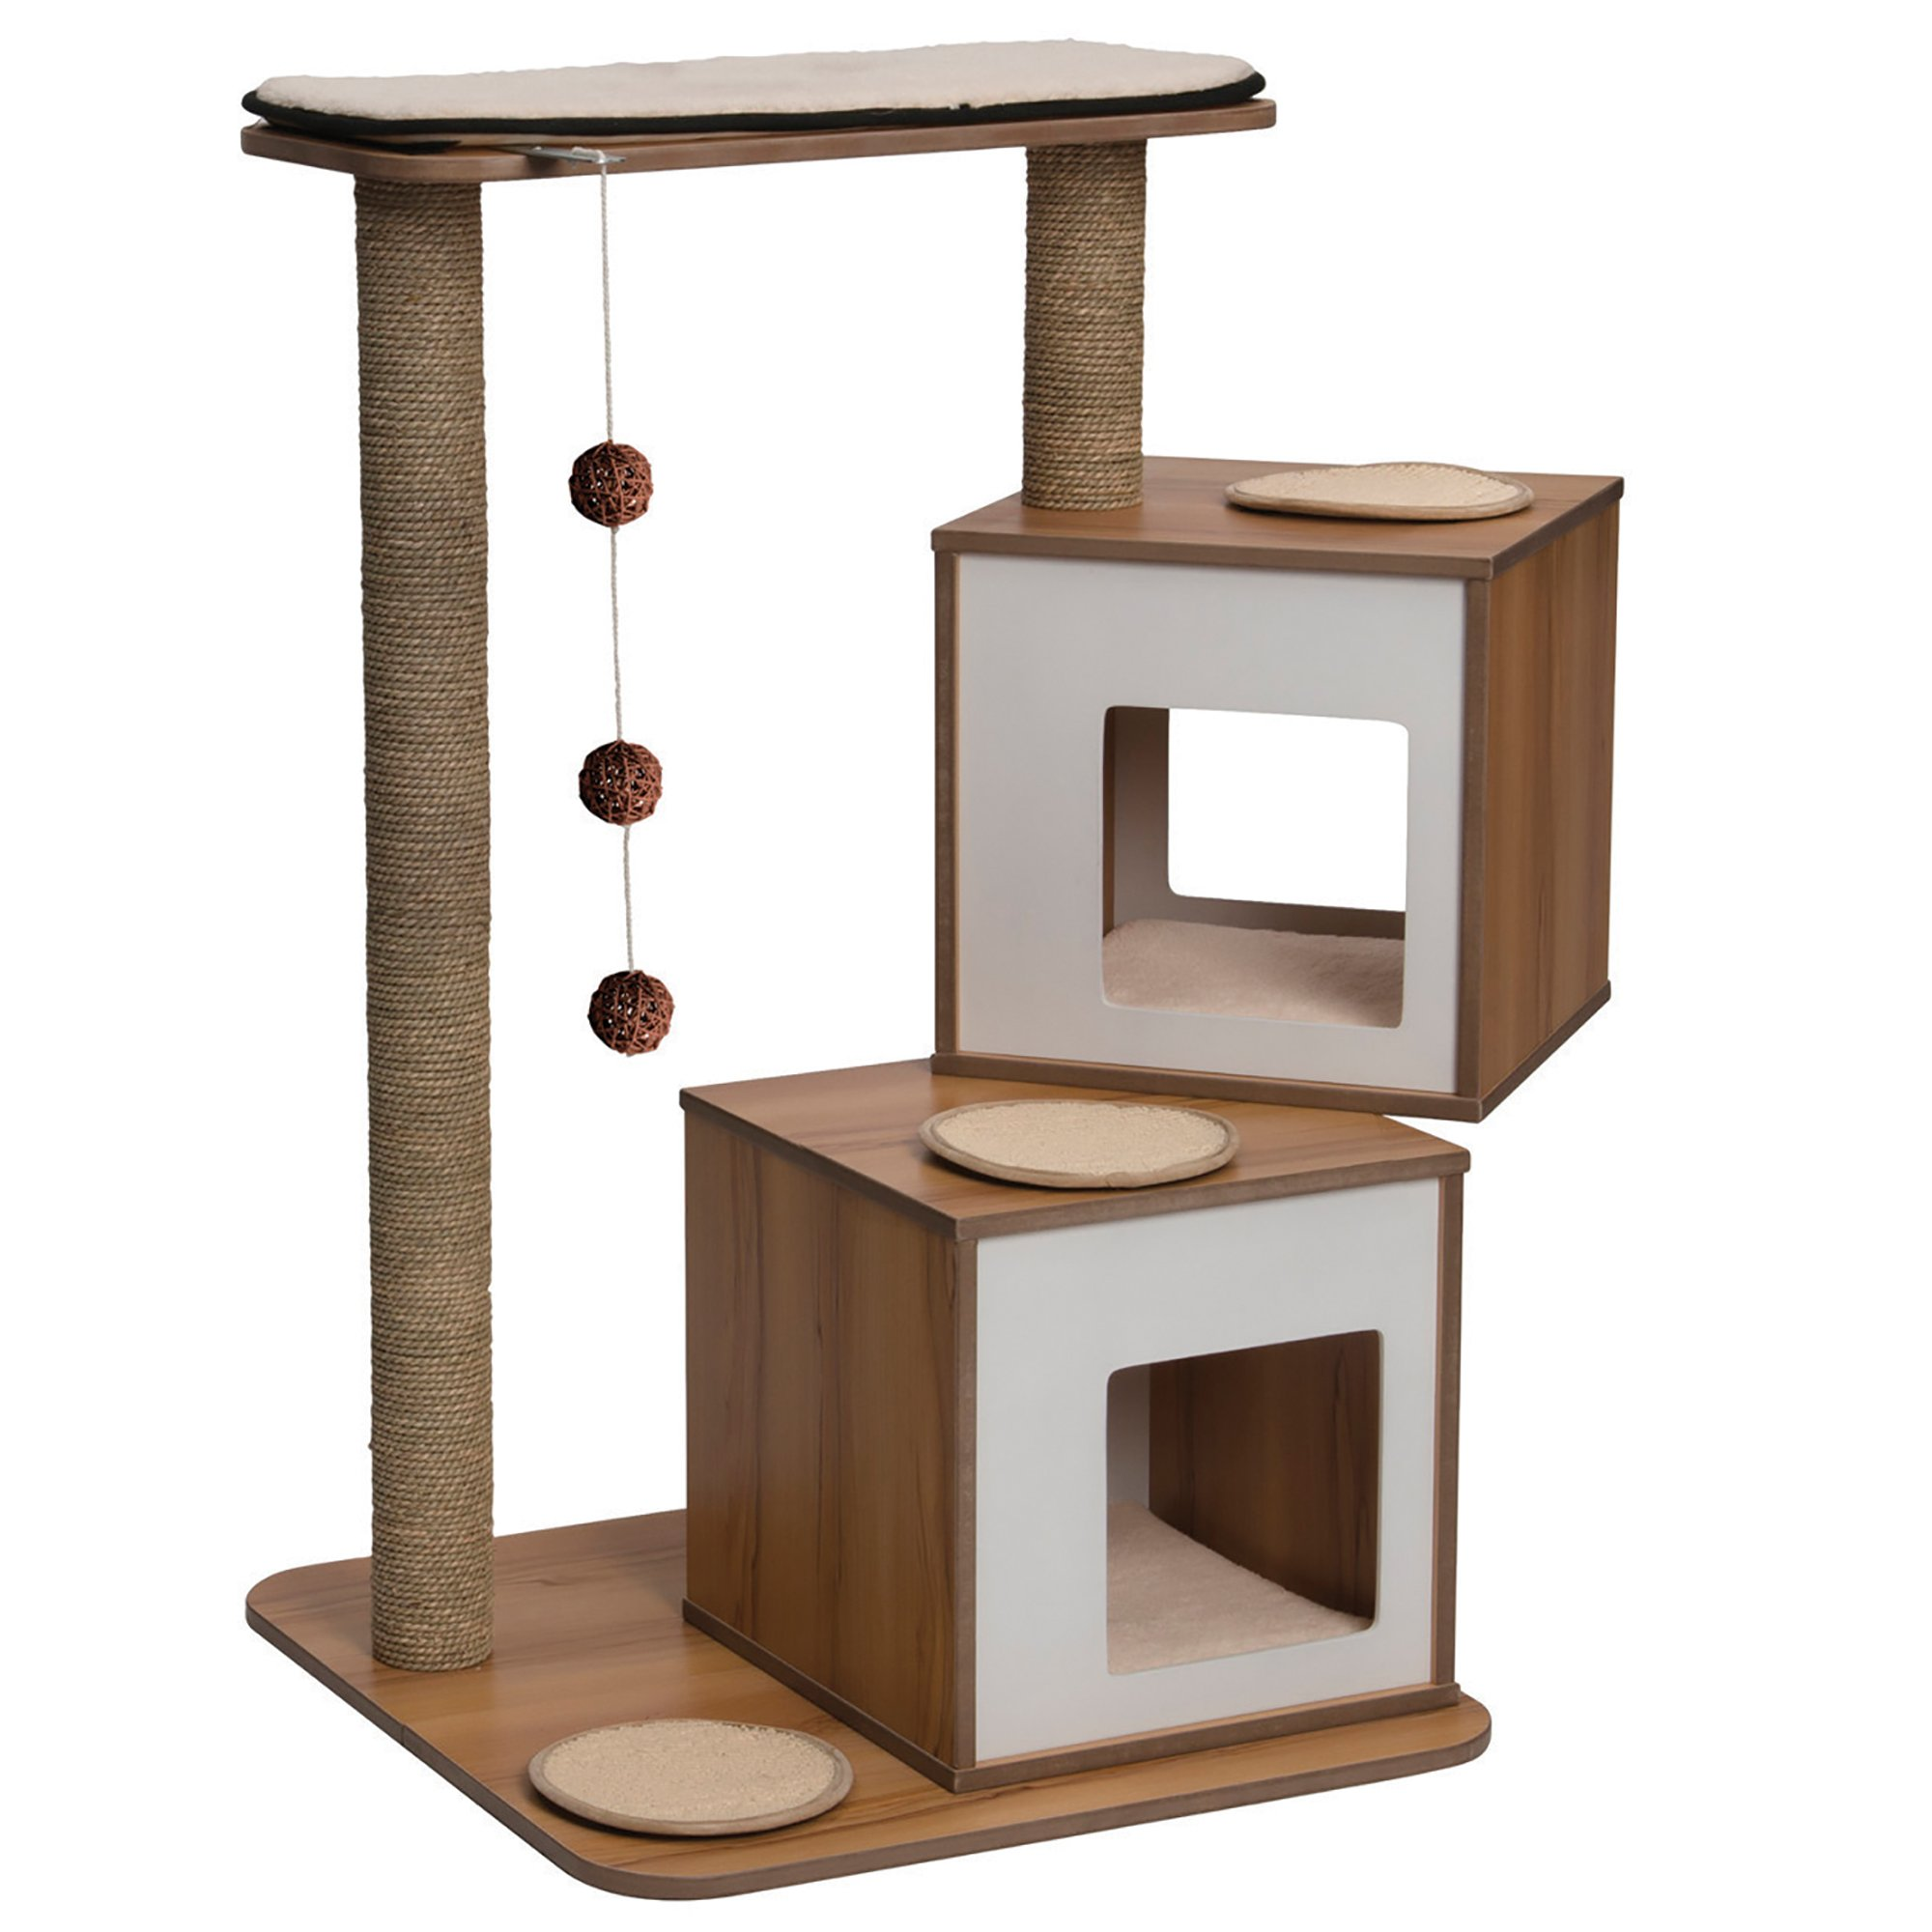 Modern cat condo best 25 modern cat furniture ideas on pinterest cat scratching - Contemporary cat furniture ideas ...